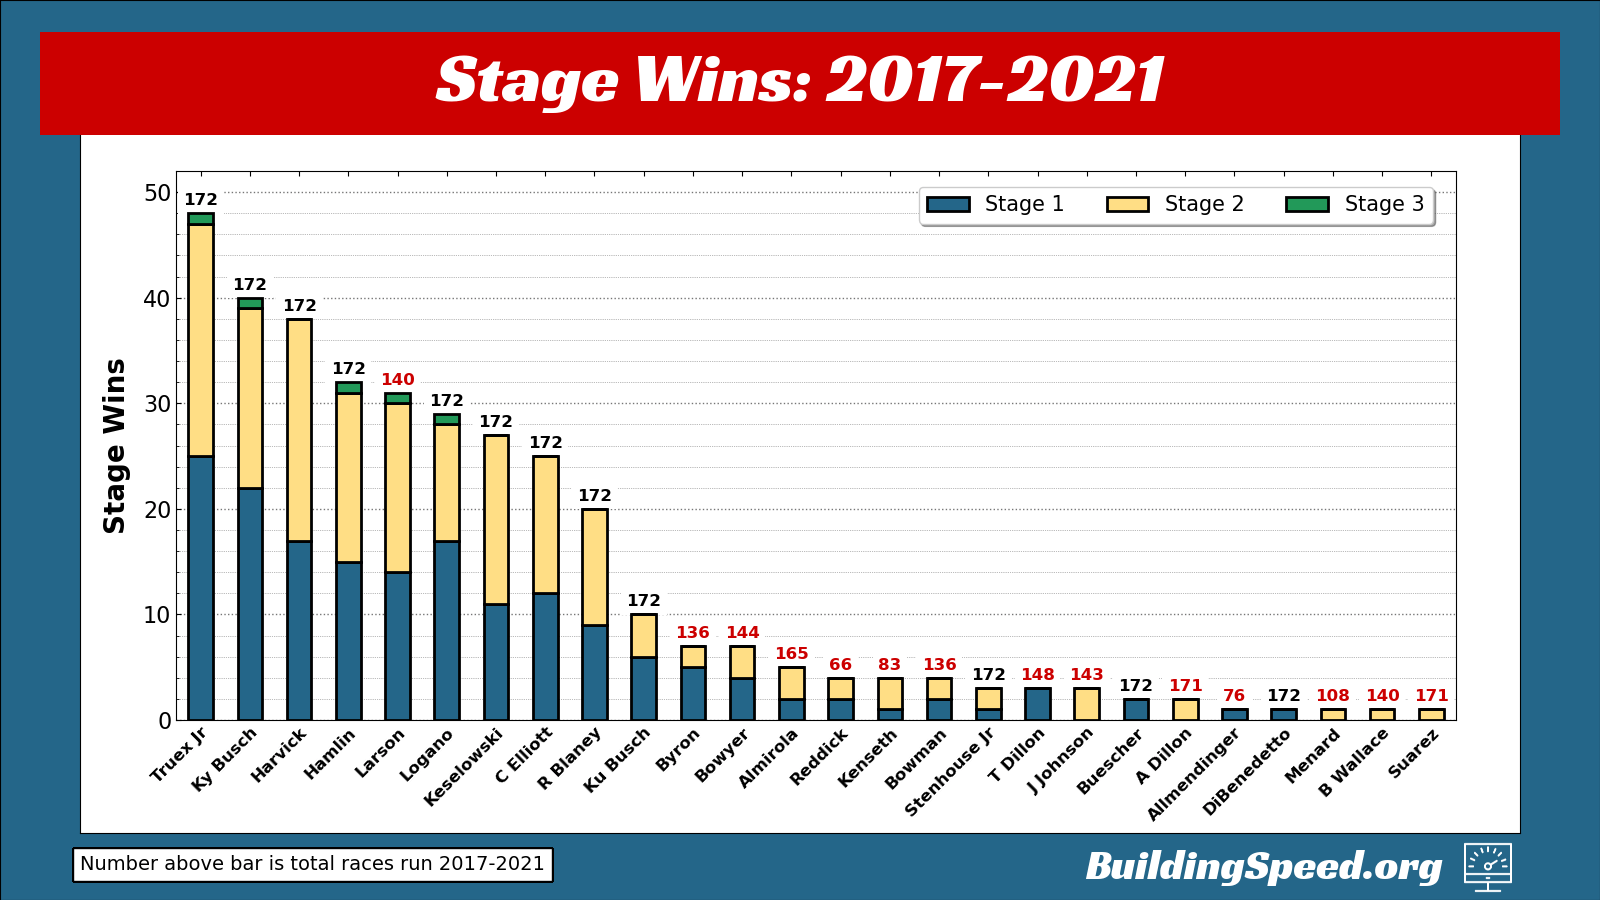 Stage wins shown in a vertical stacked bar graph, separated according to stage 1, stage 2 or stage 3.